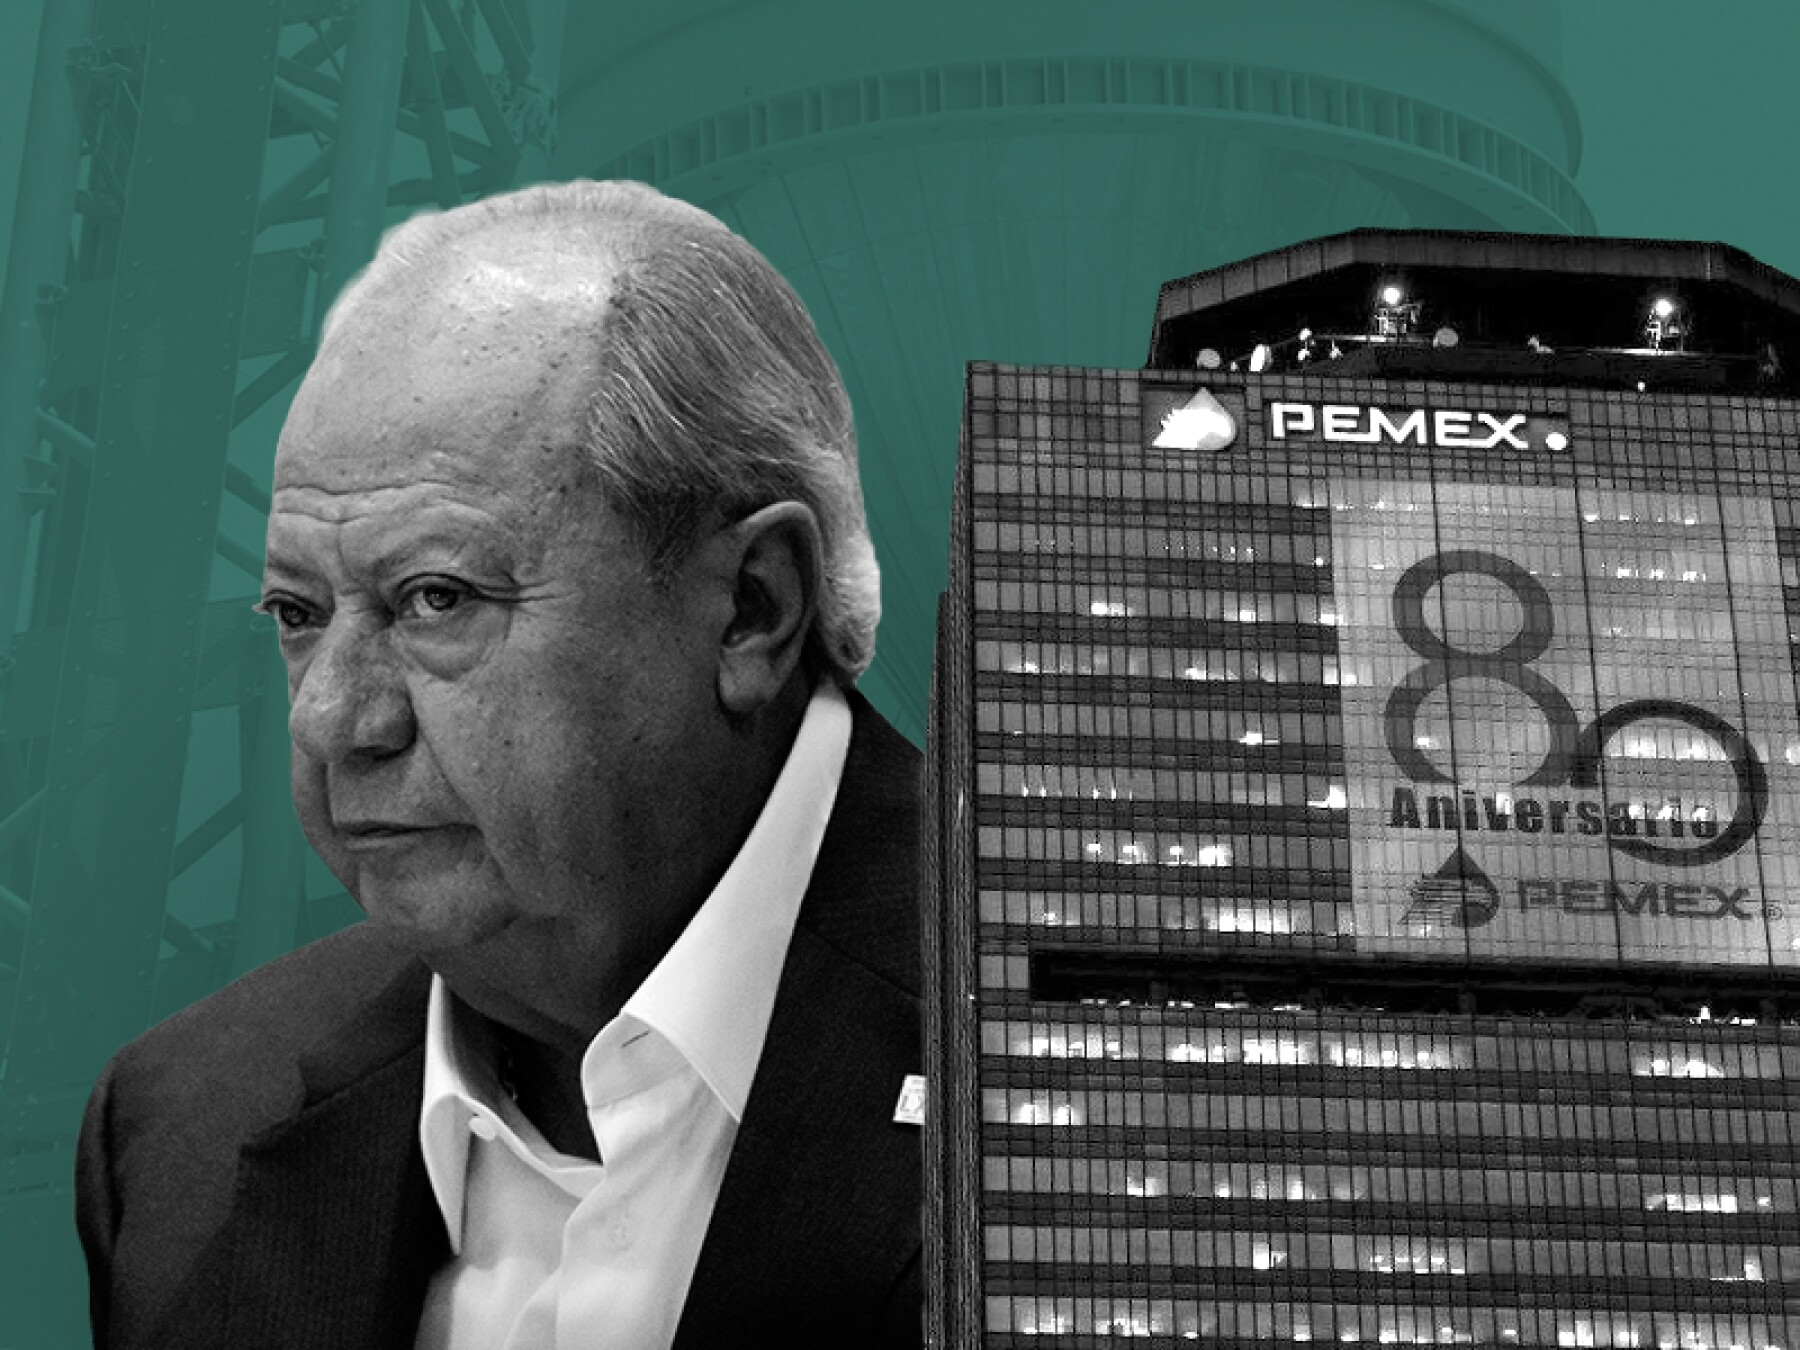 Pemex deschamps